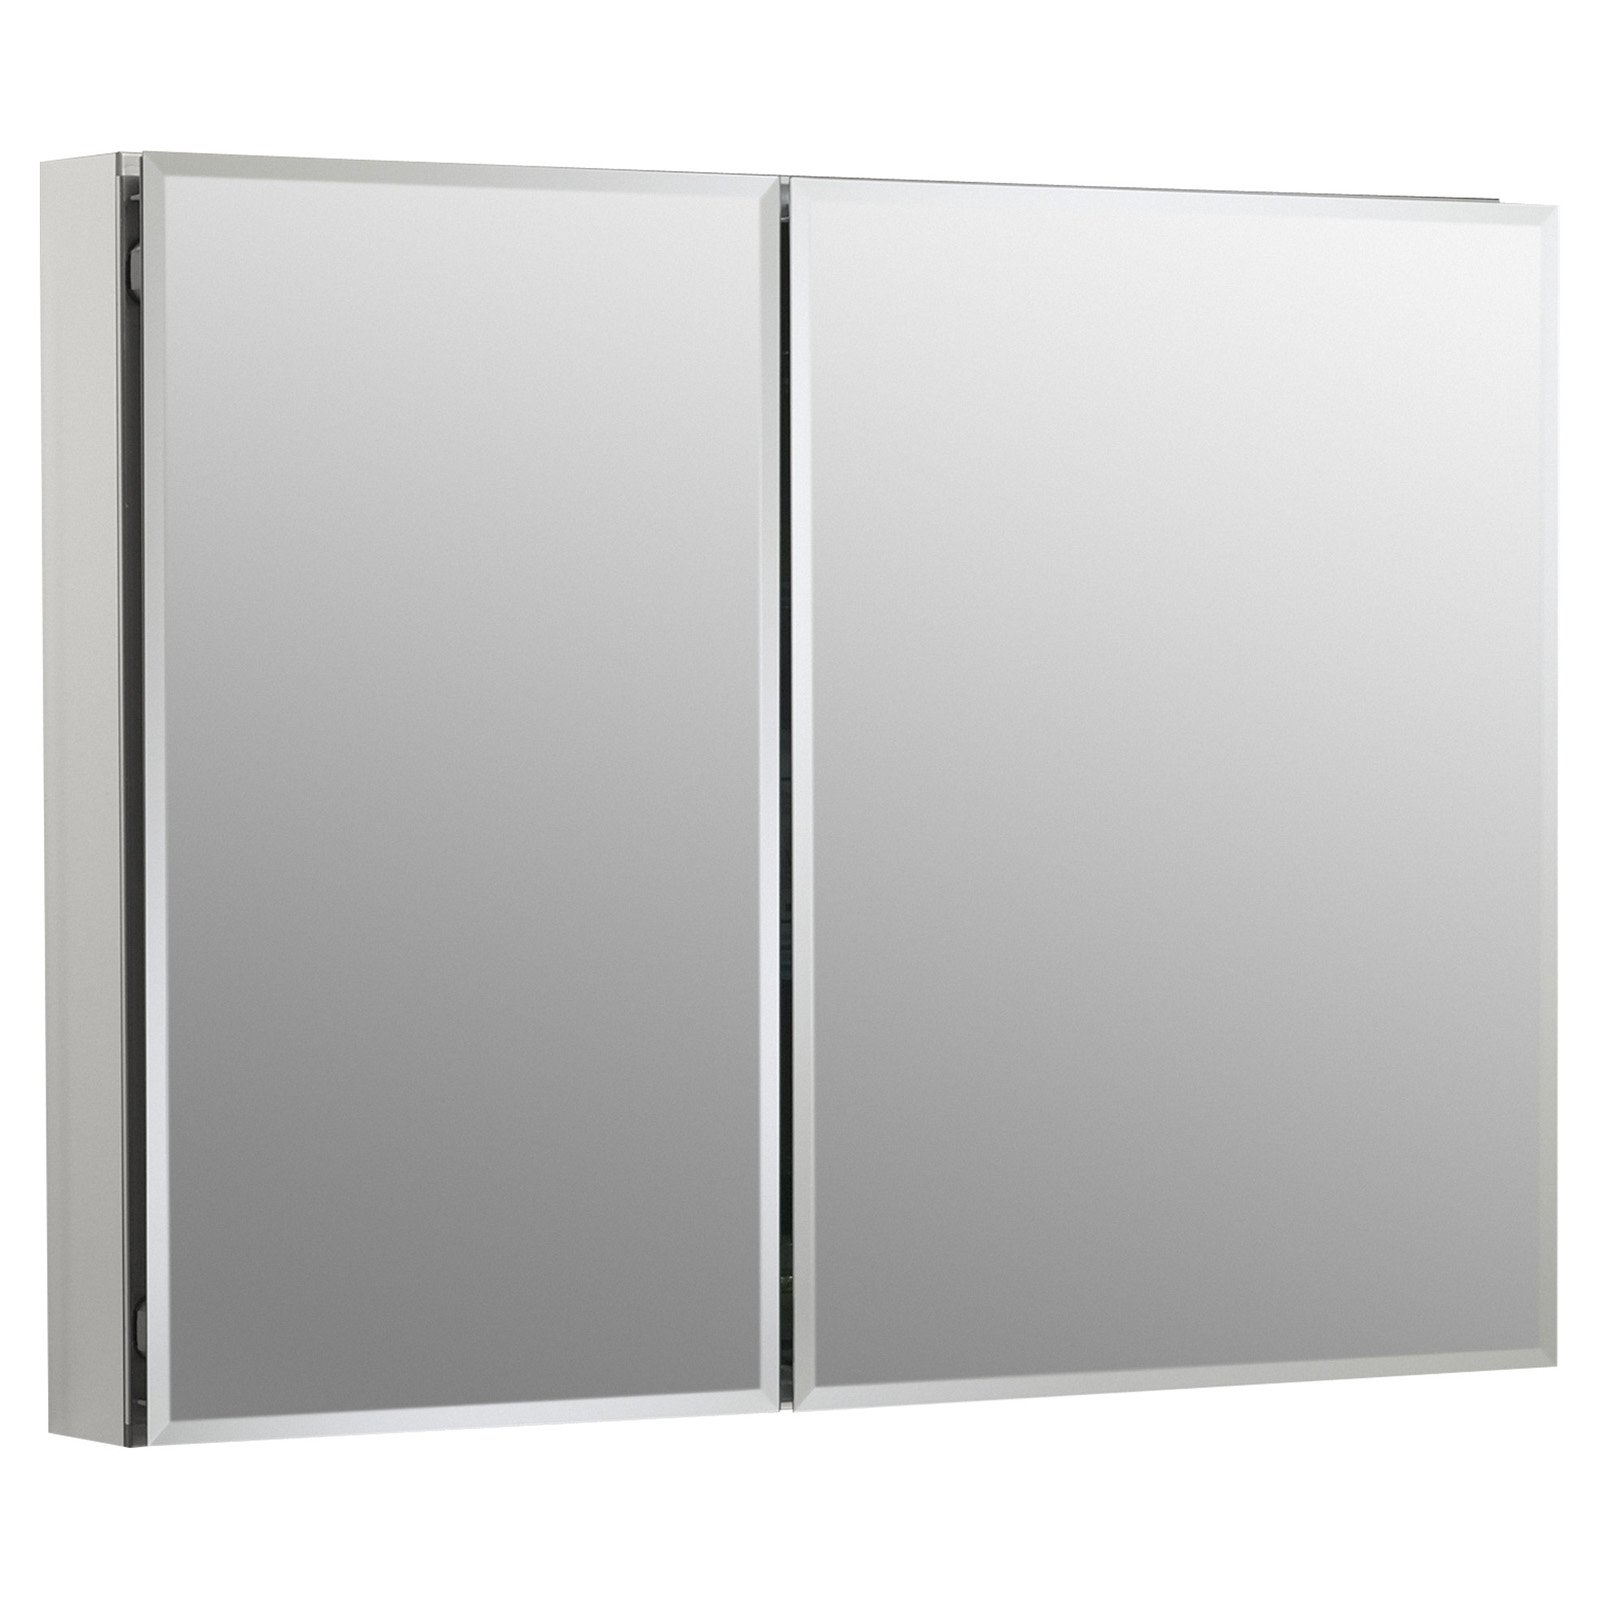 Kohler Double Door Aluminum Cabinet With Mirrored Doors